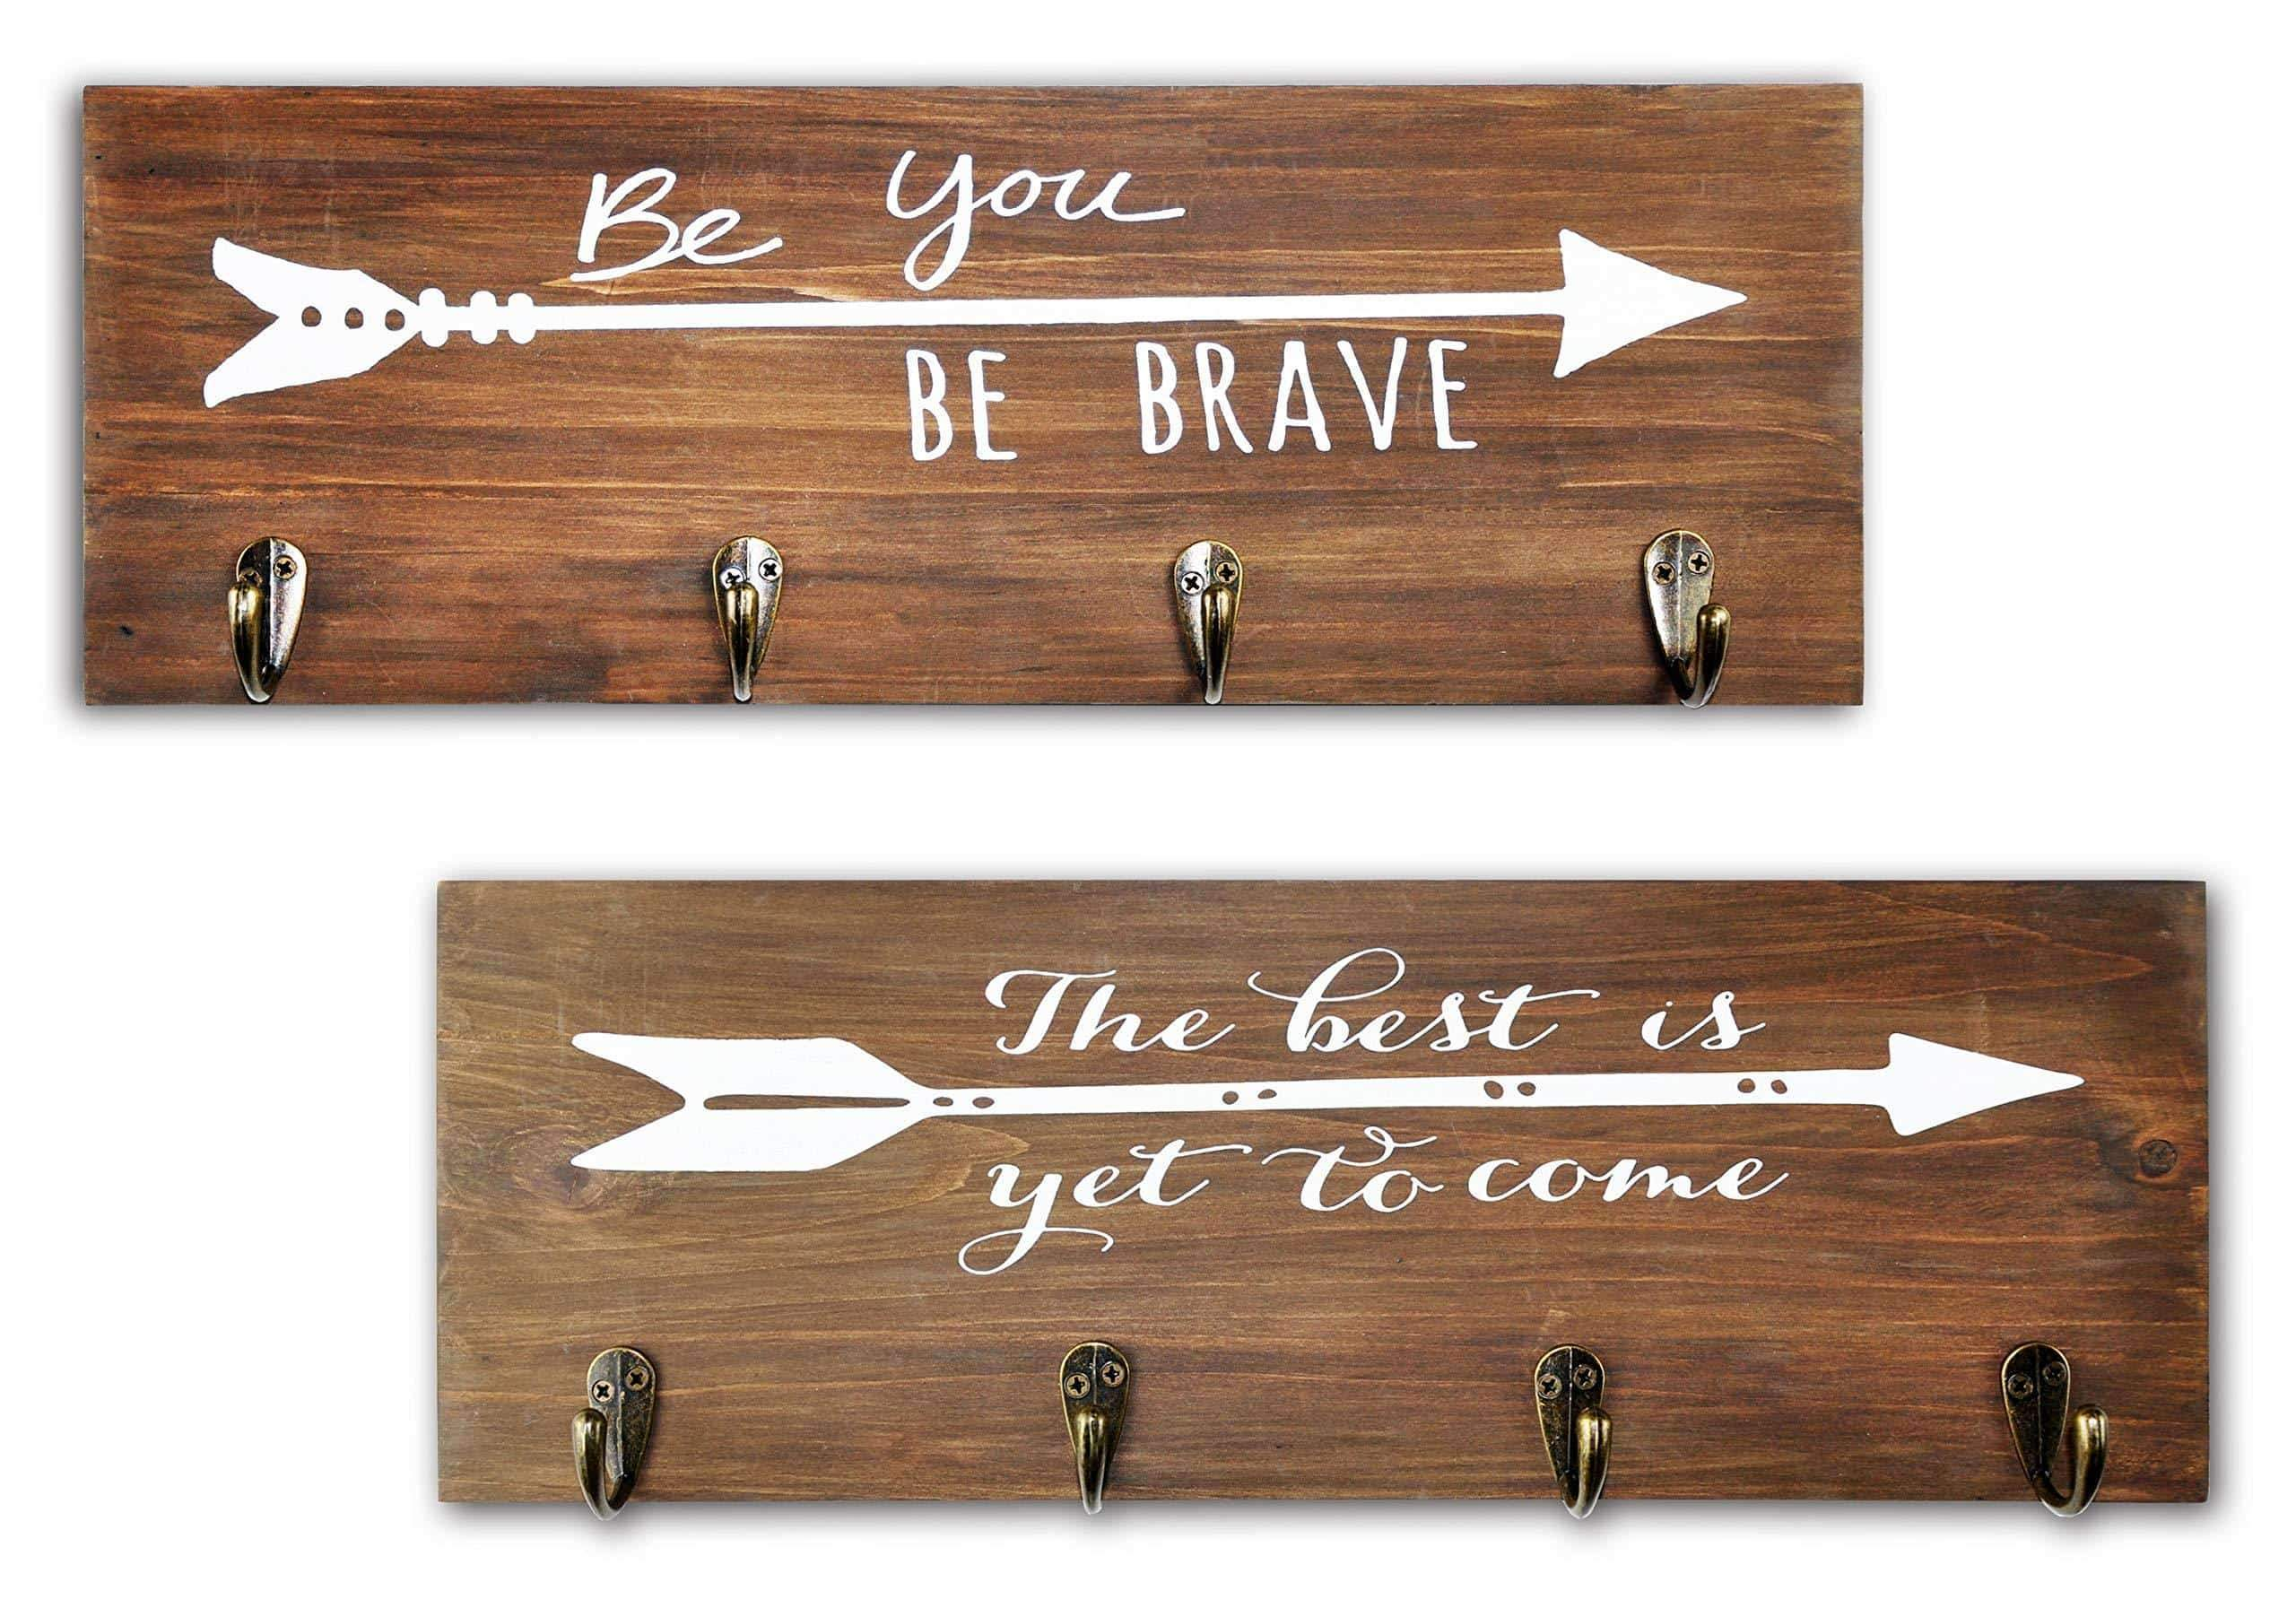 Spiretro Set of 2 Wall Mount Wood Plaque, Metal Key Hook Rack, Printed Arrow Sign and Inspirational Words, Coat Hat Bag Hang Organizer, Leash holder, 16.5 inch for Entryway Kids Room Hallway Closet, Rustic Teak Brown